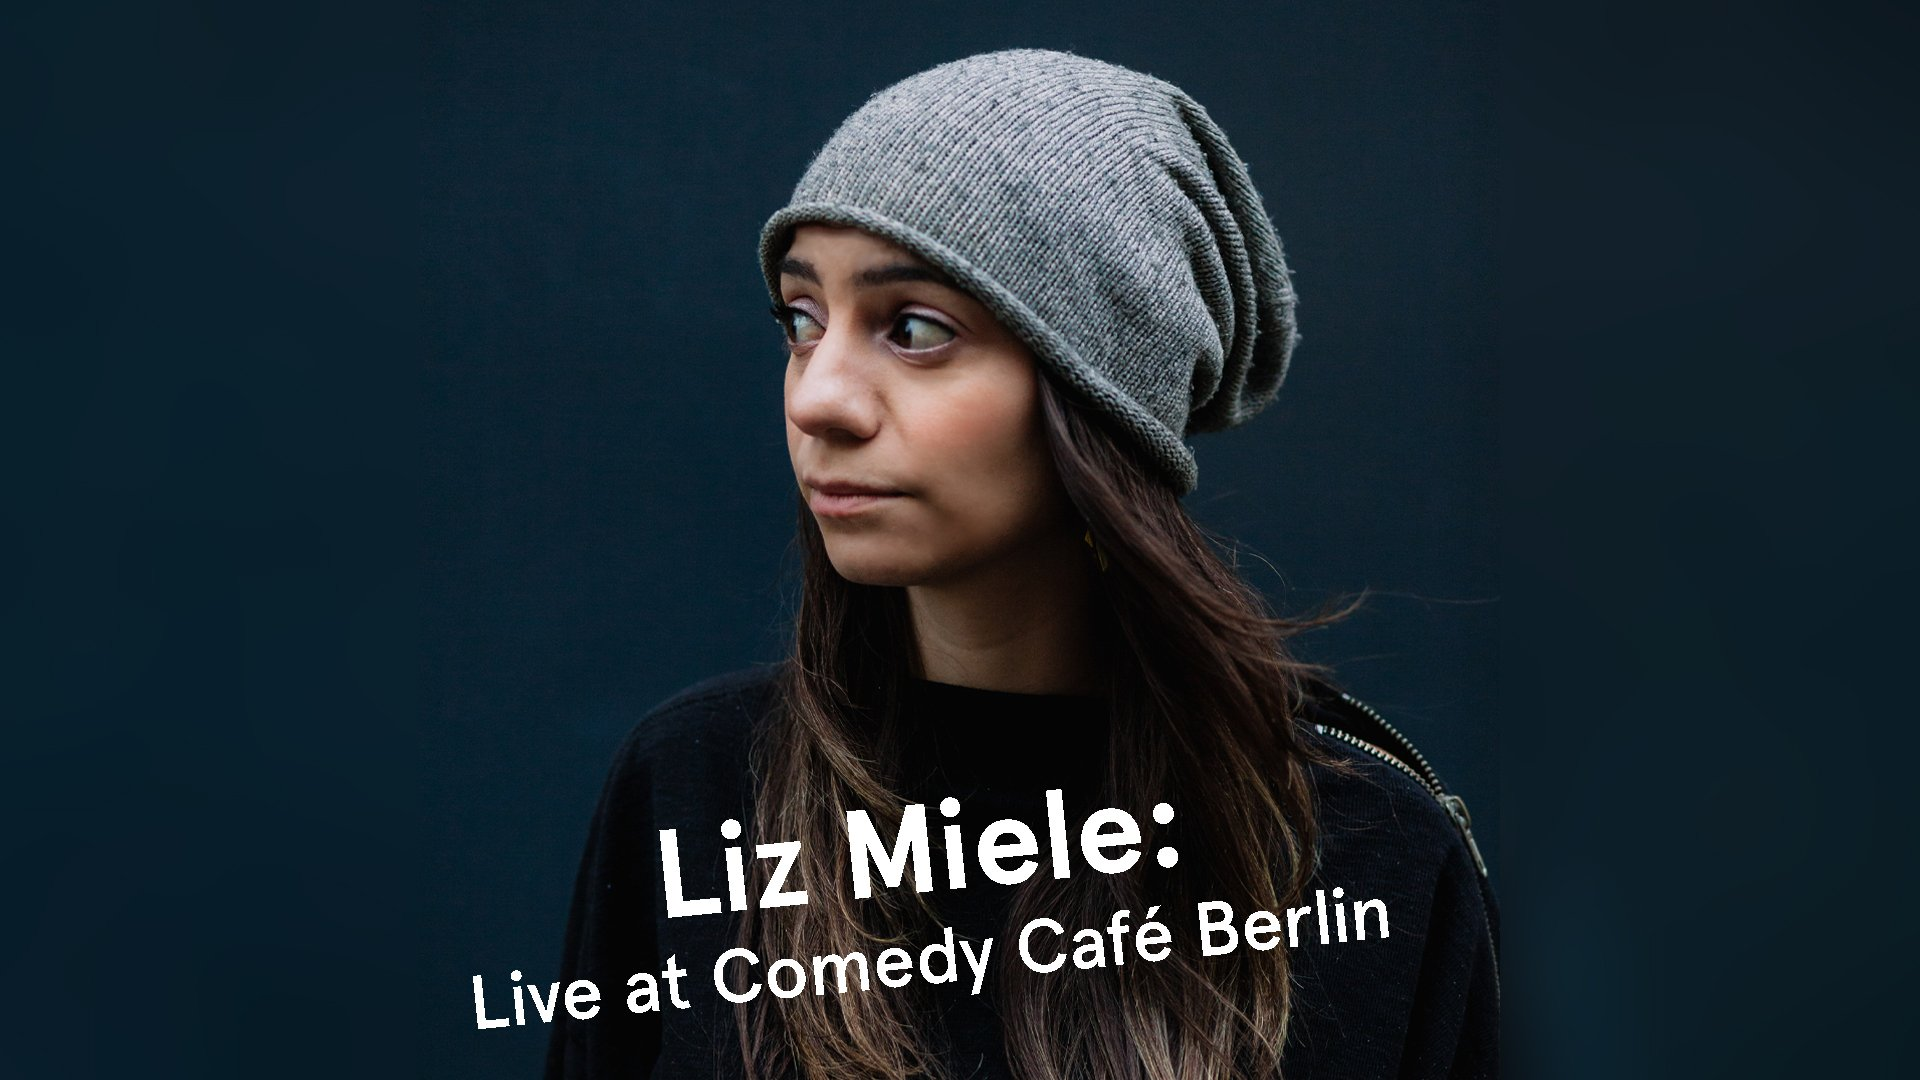 Liz Miele: Live at Comedy Café Berlin